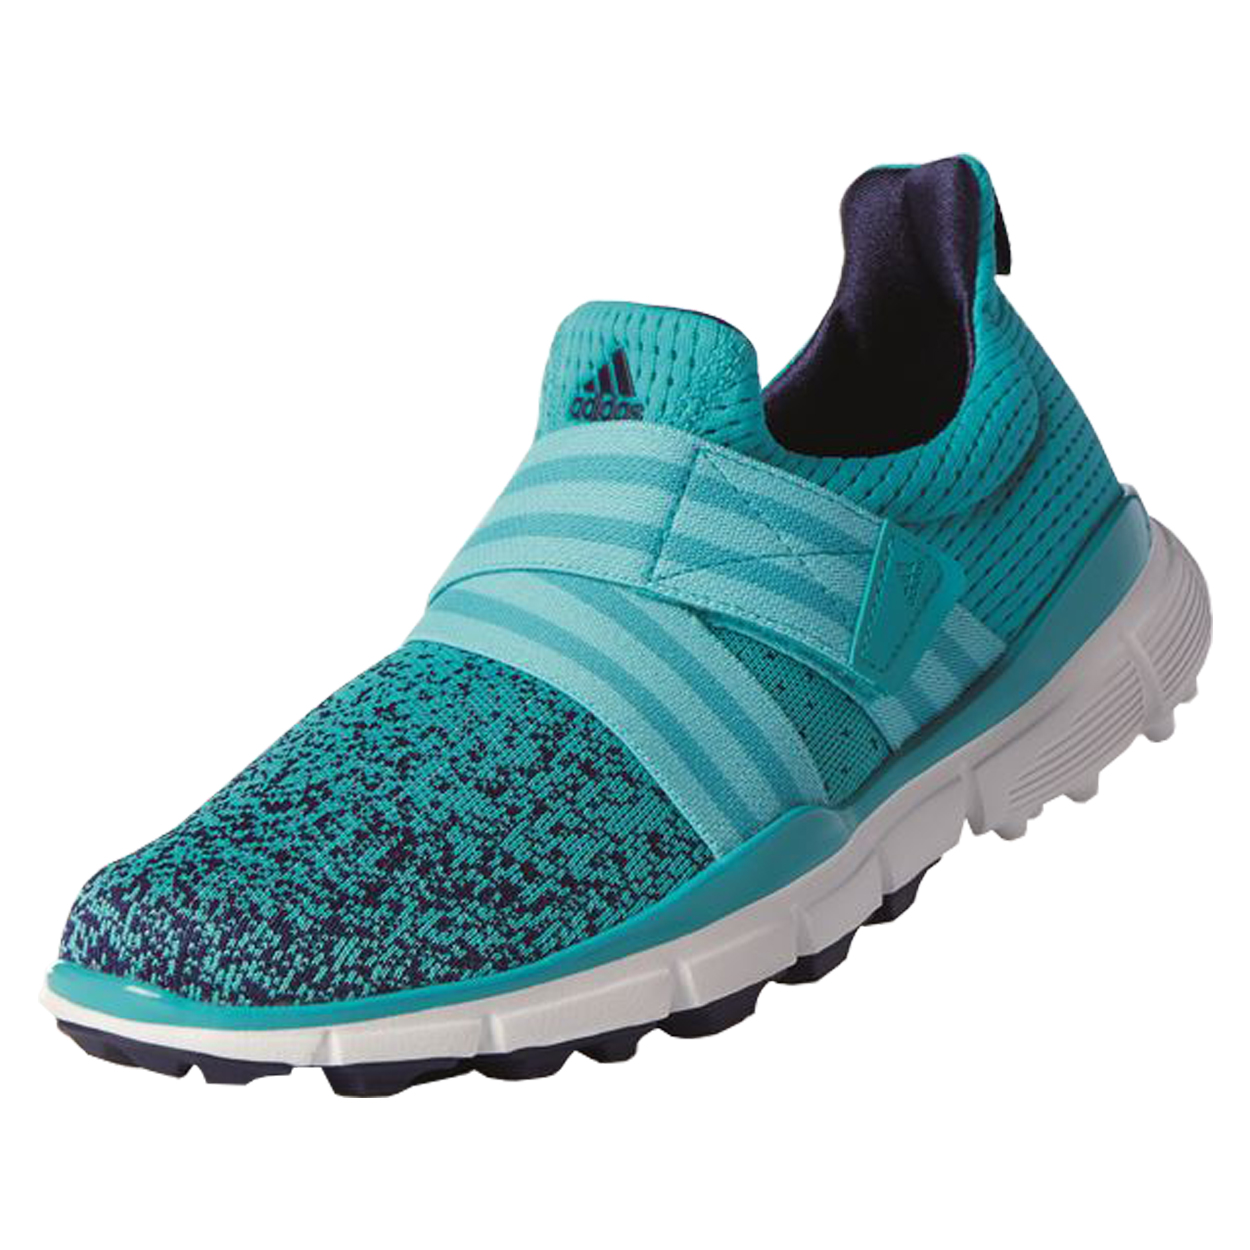 adidas women's climacool shoes nz